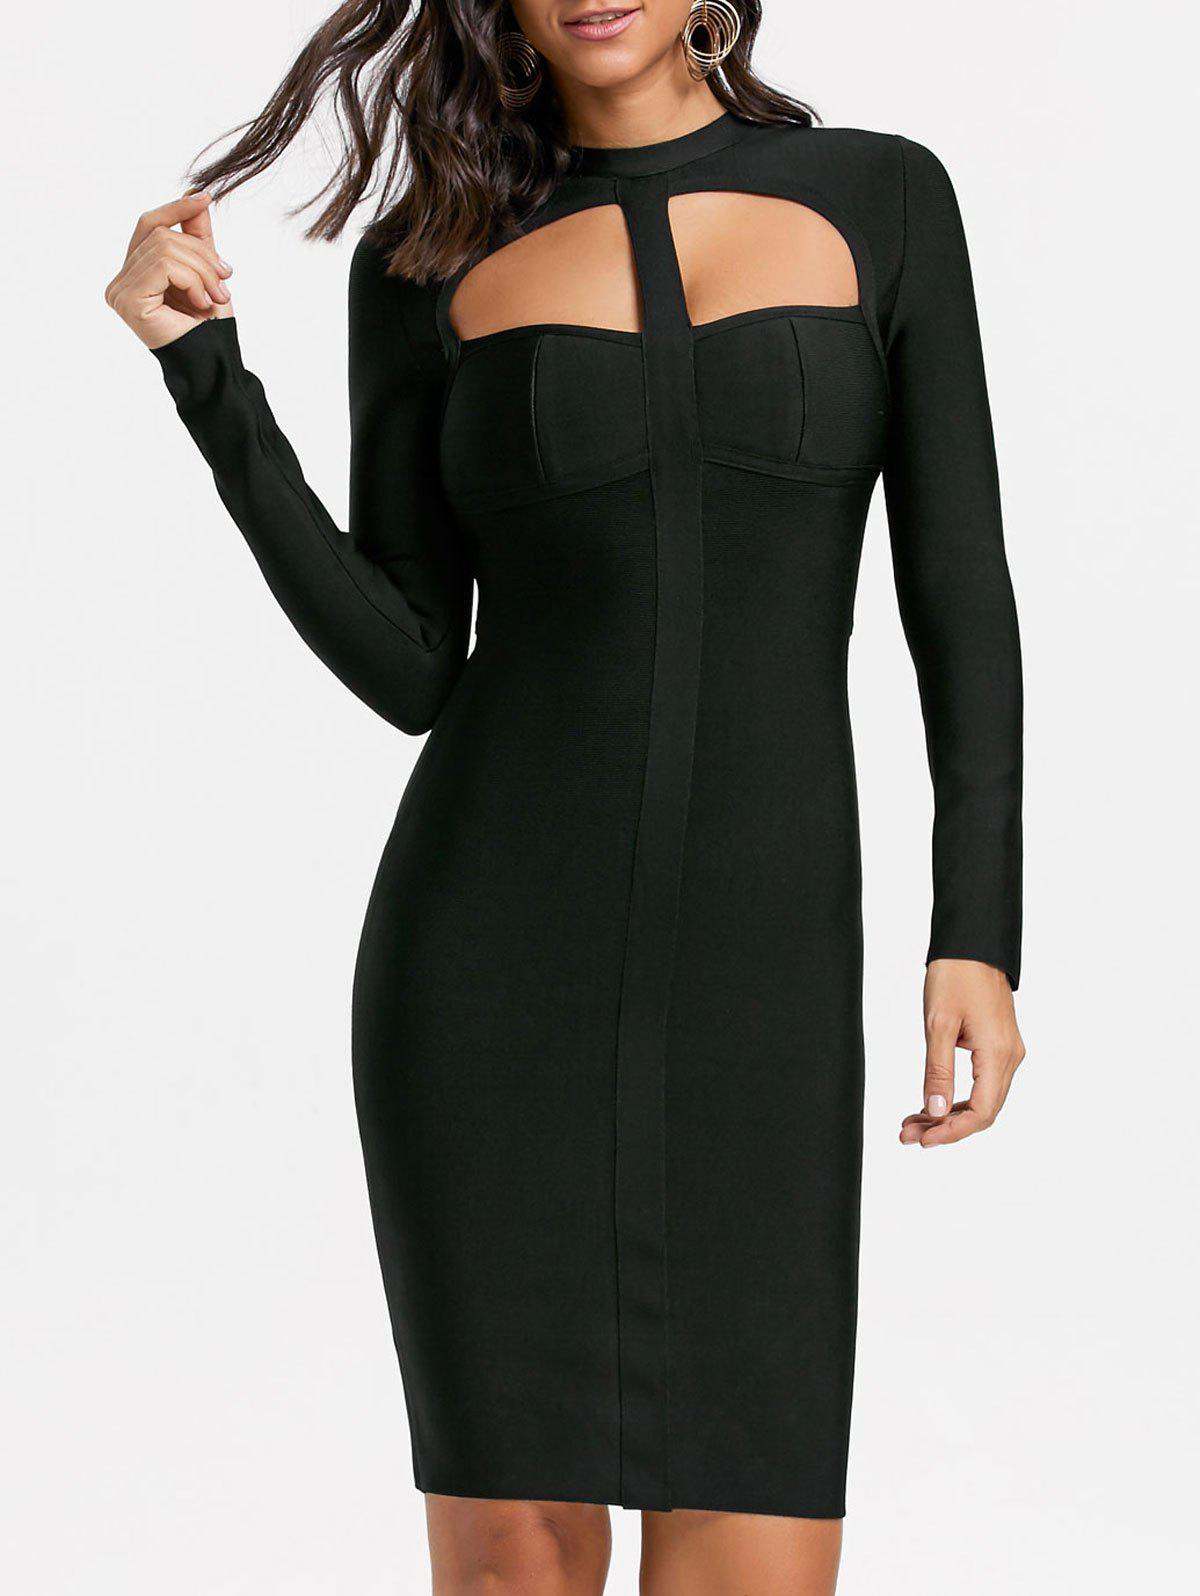 Store Club Long Sleeve Cut Out Bandage Dress